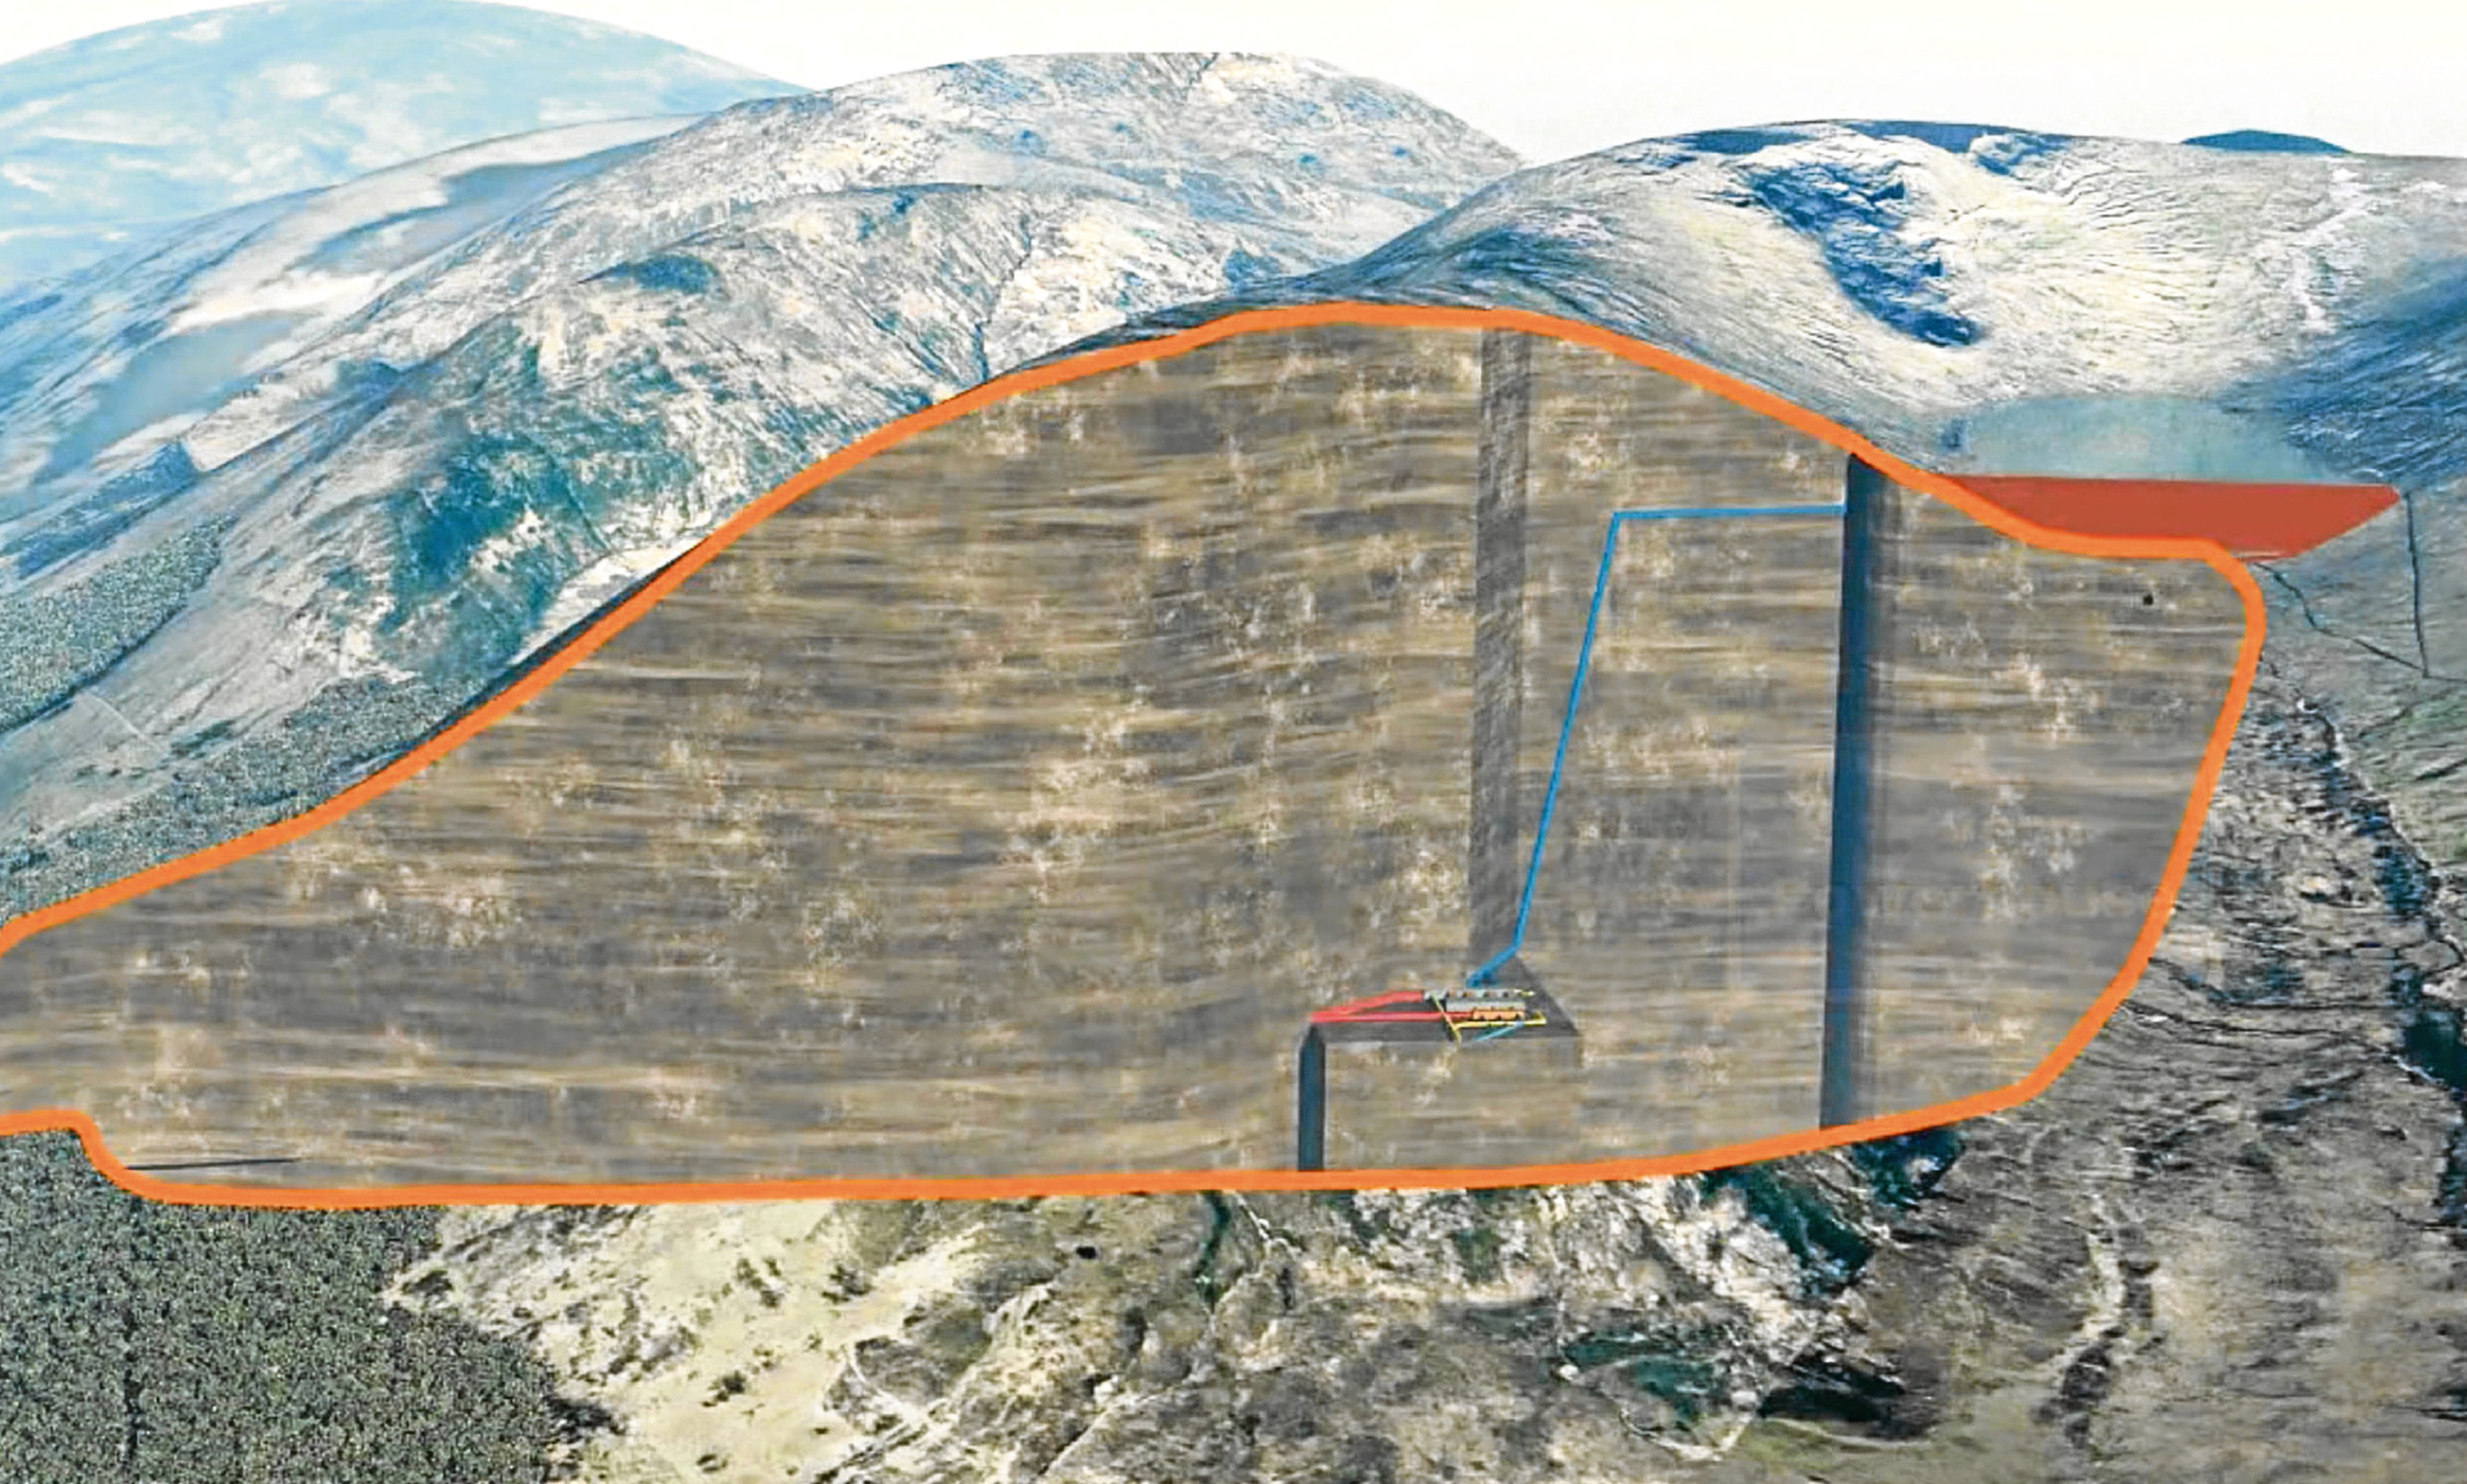 A cross section of SSEs Coire Glas pumped hydro storage development showing the scheme's workings extending from a planned new reservoir.